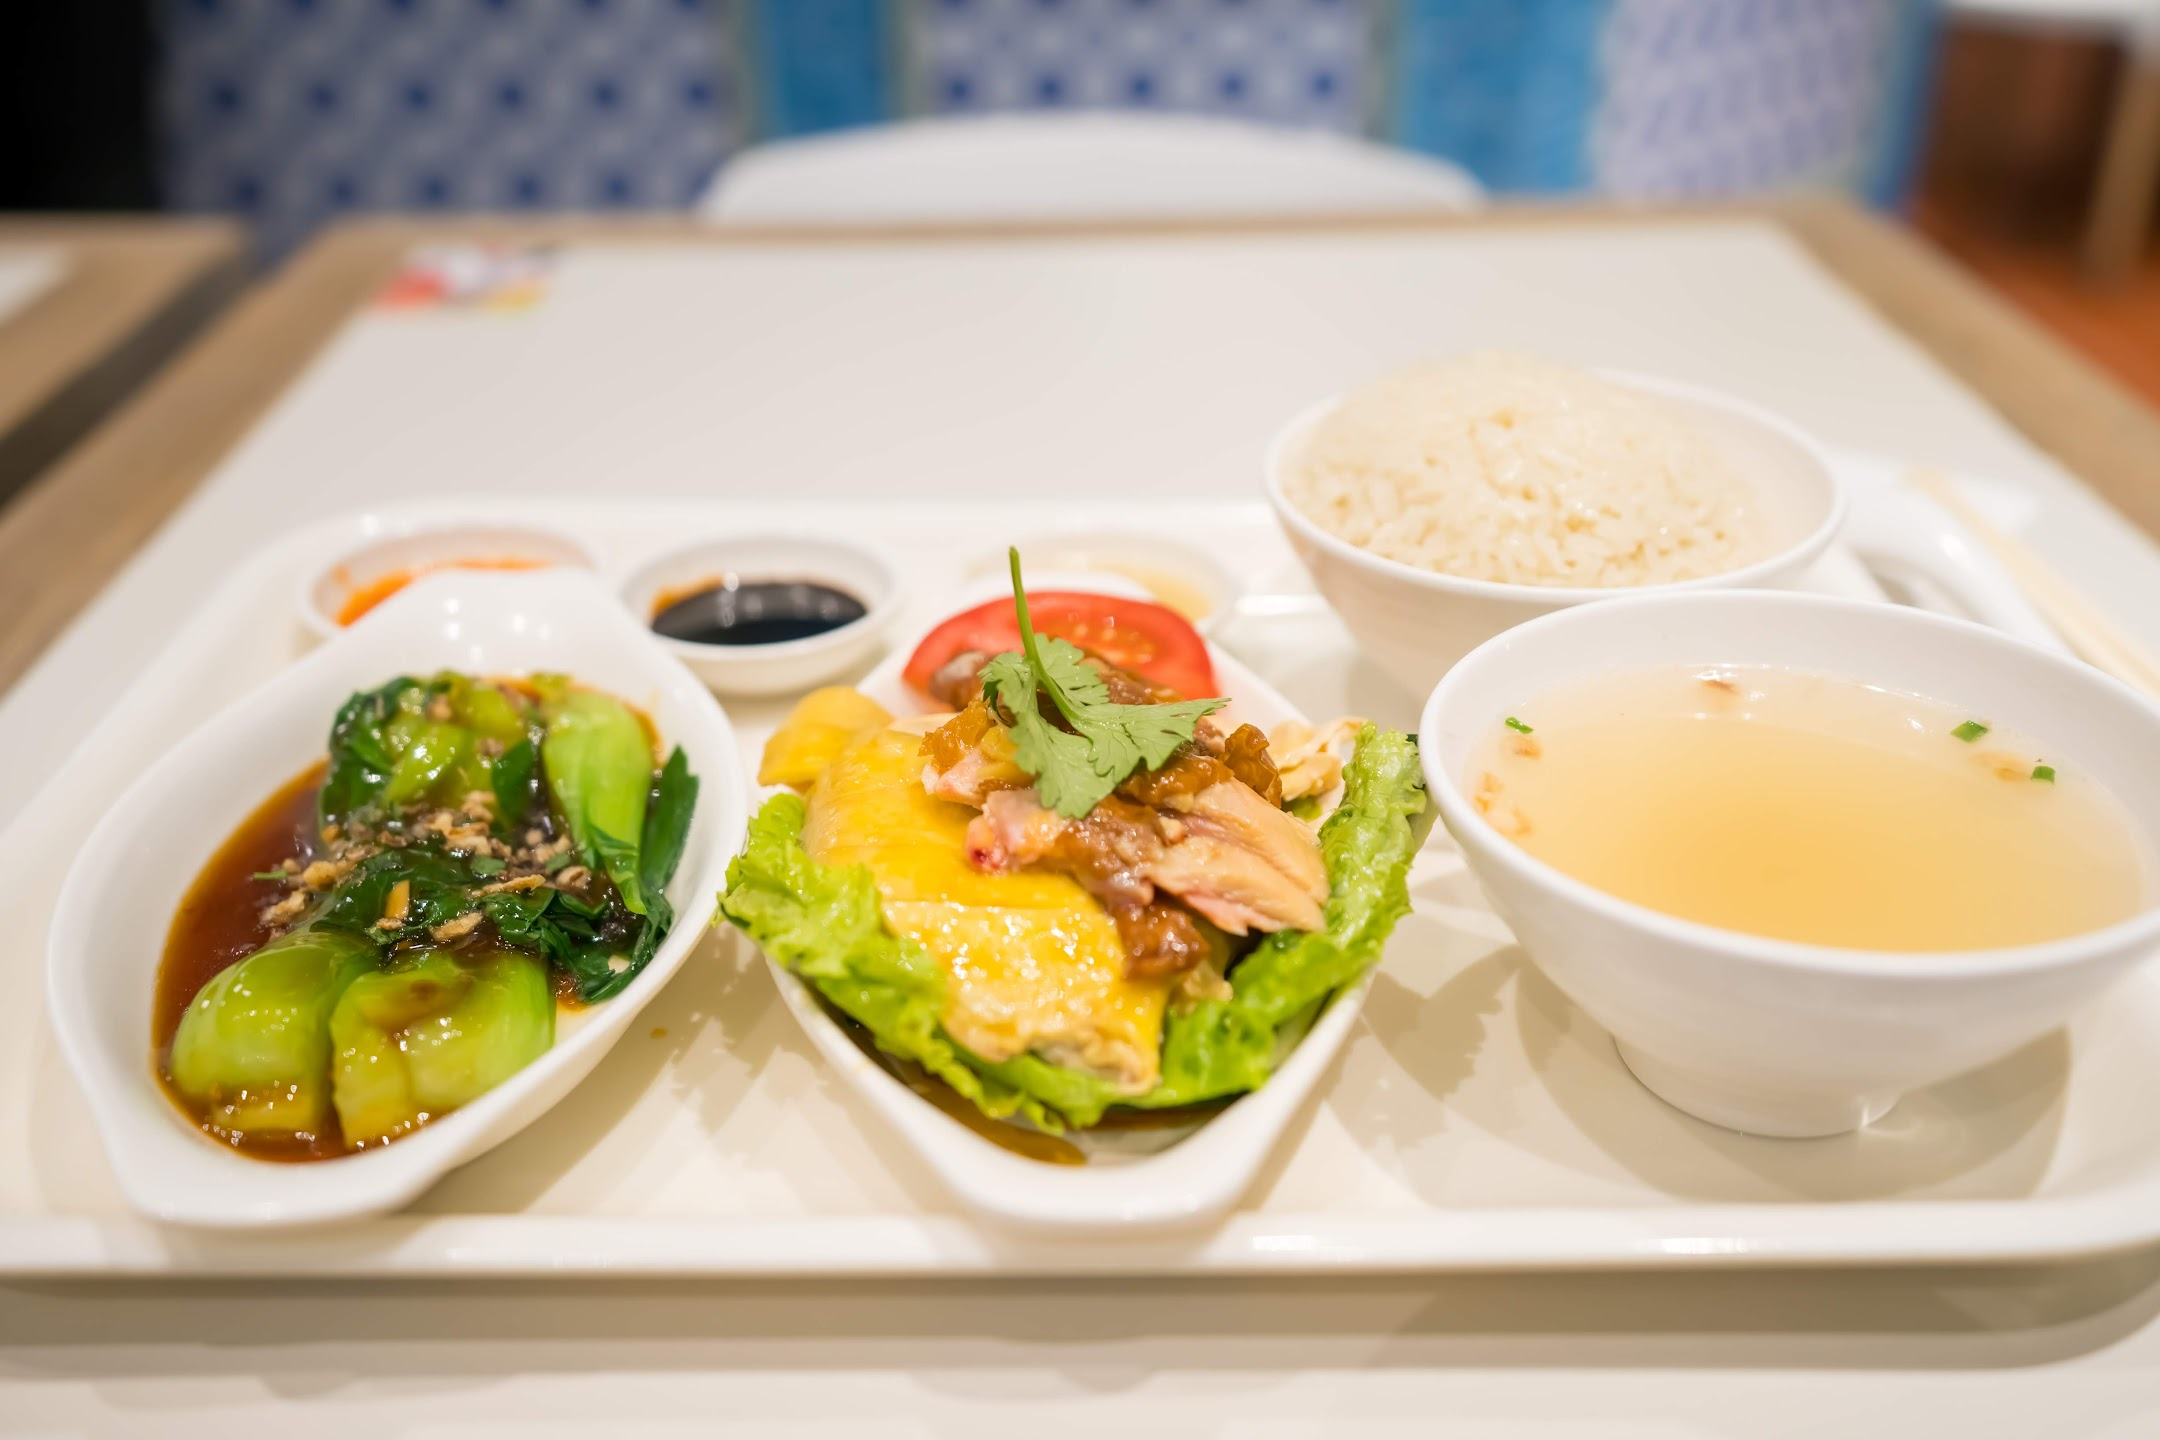 上海タワー Food Republic(大食代) 三巡海南鶏飯(Sergeant Hainanese Chicken Rice)2